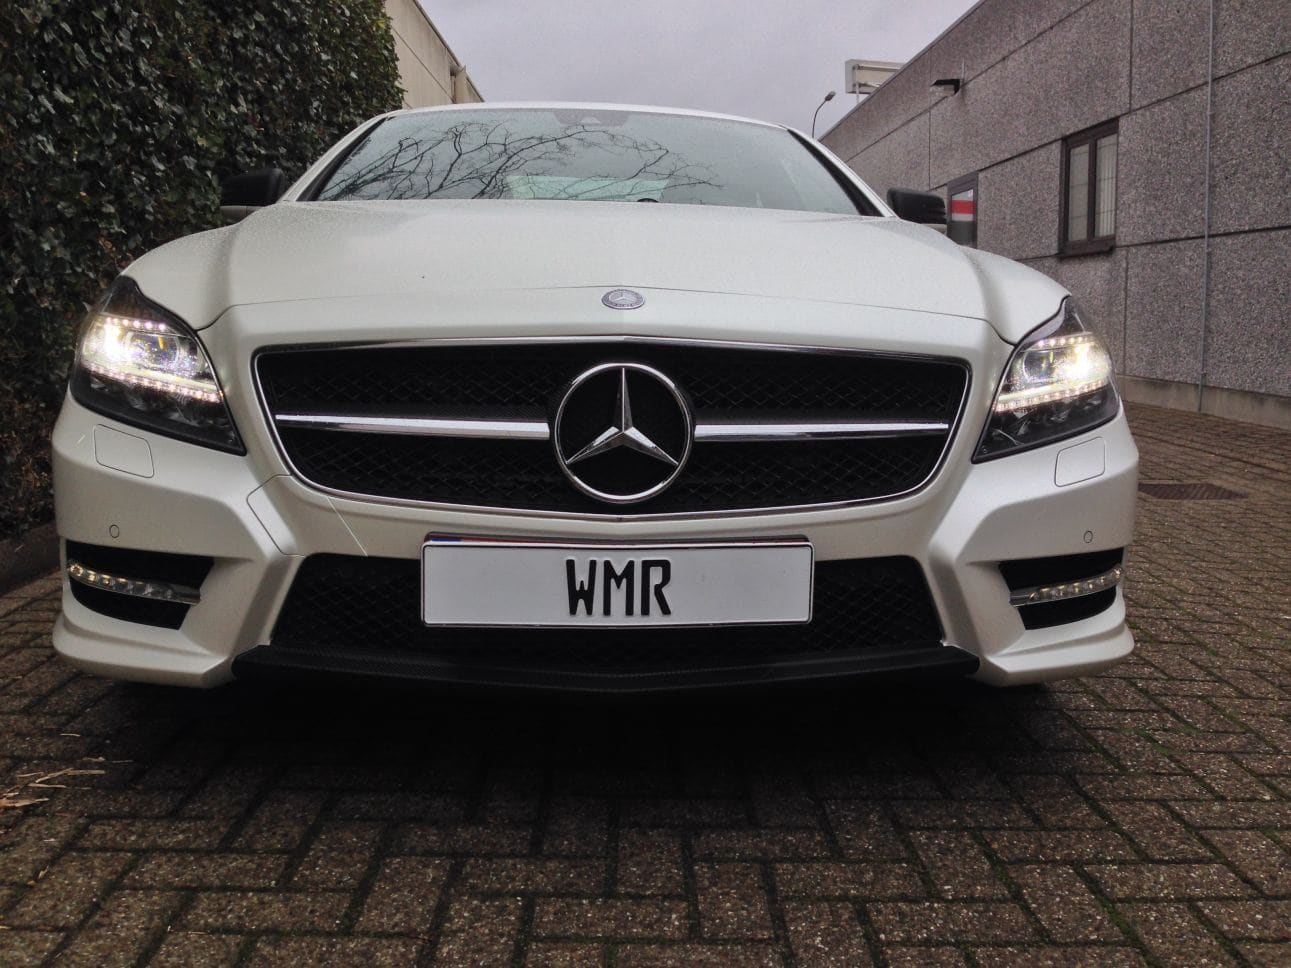 Mercedes CLS met White Satin Pearl Wrap, Carwrapping door Wrapmyride.nu Foto-nr:6206, ©2021